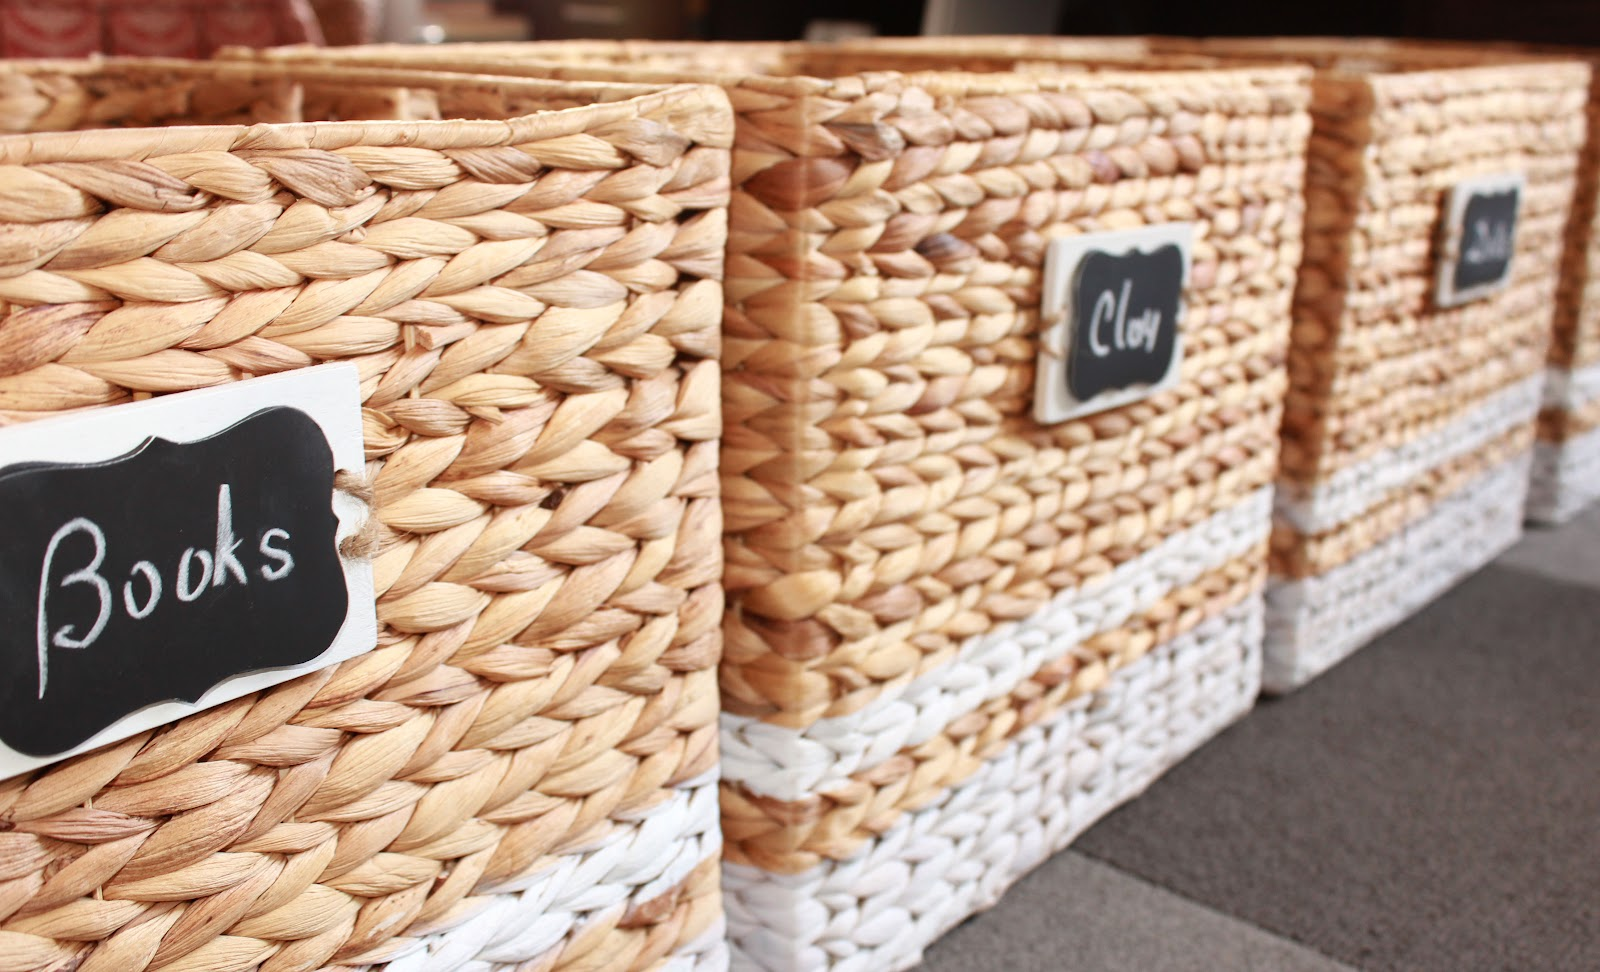 baskets were customized with paint and chalkboard tags